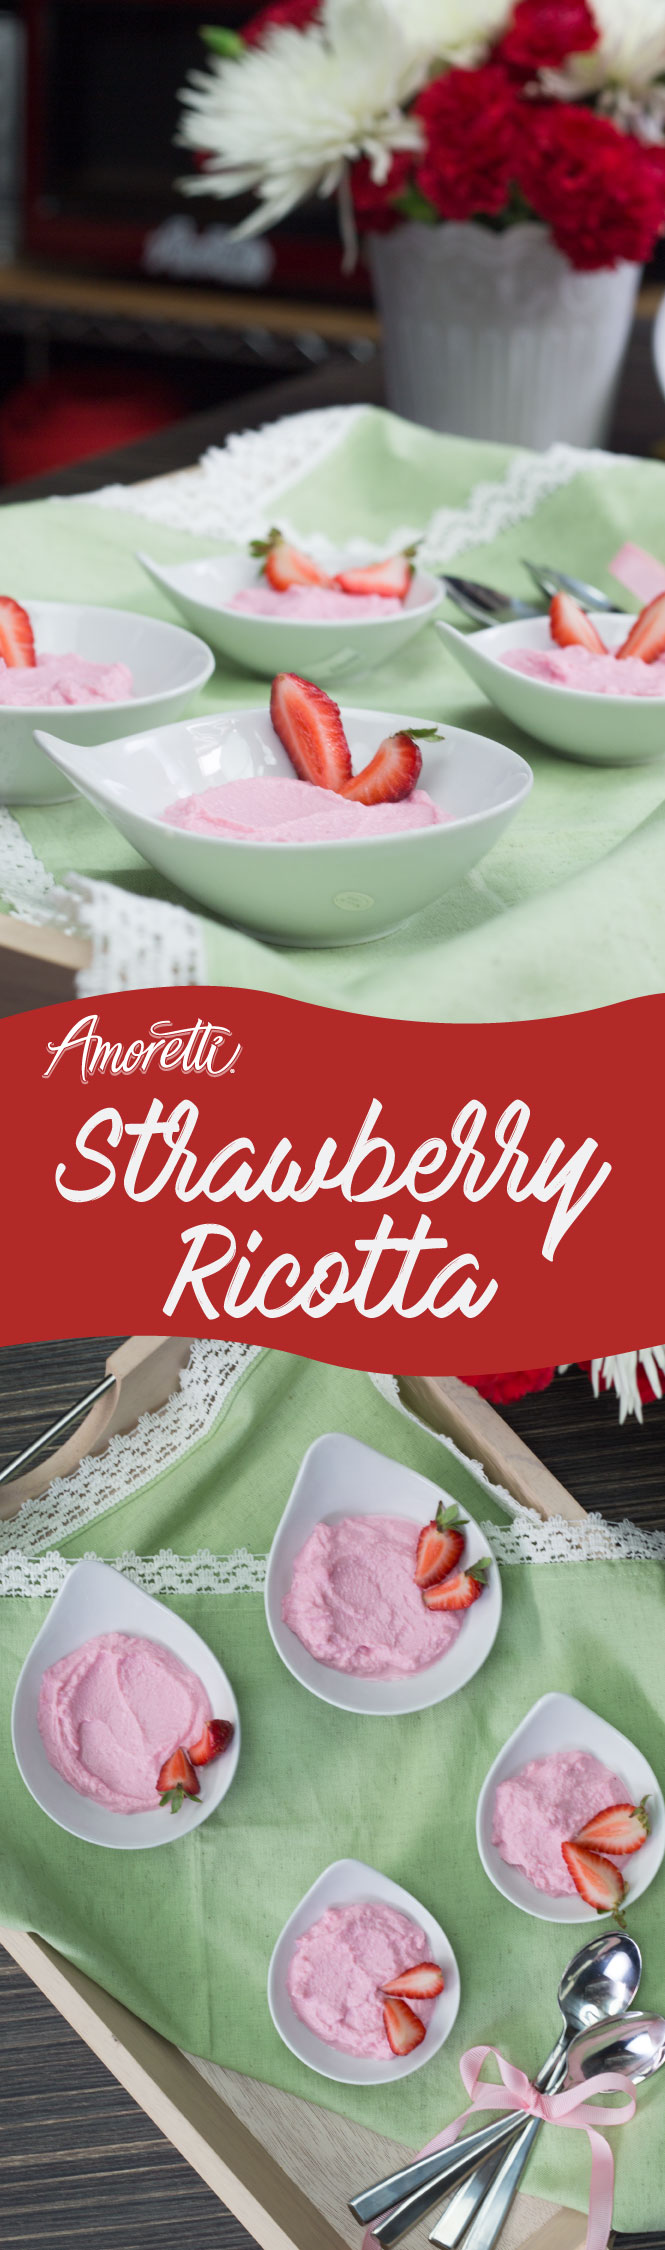 The fresh strawberry flavor in this ricotta will remind you of springtime!